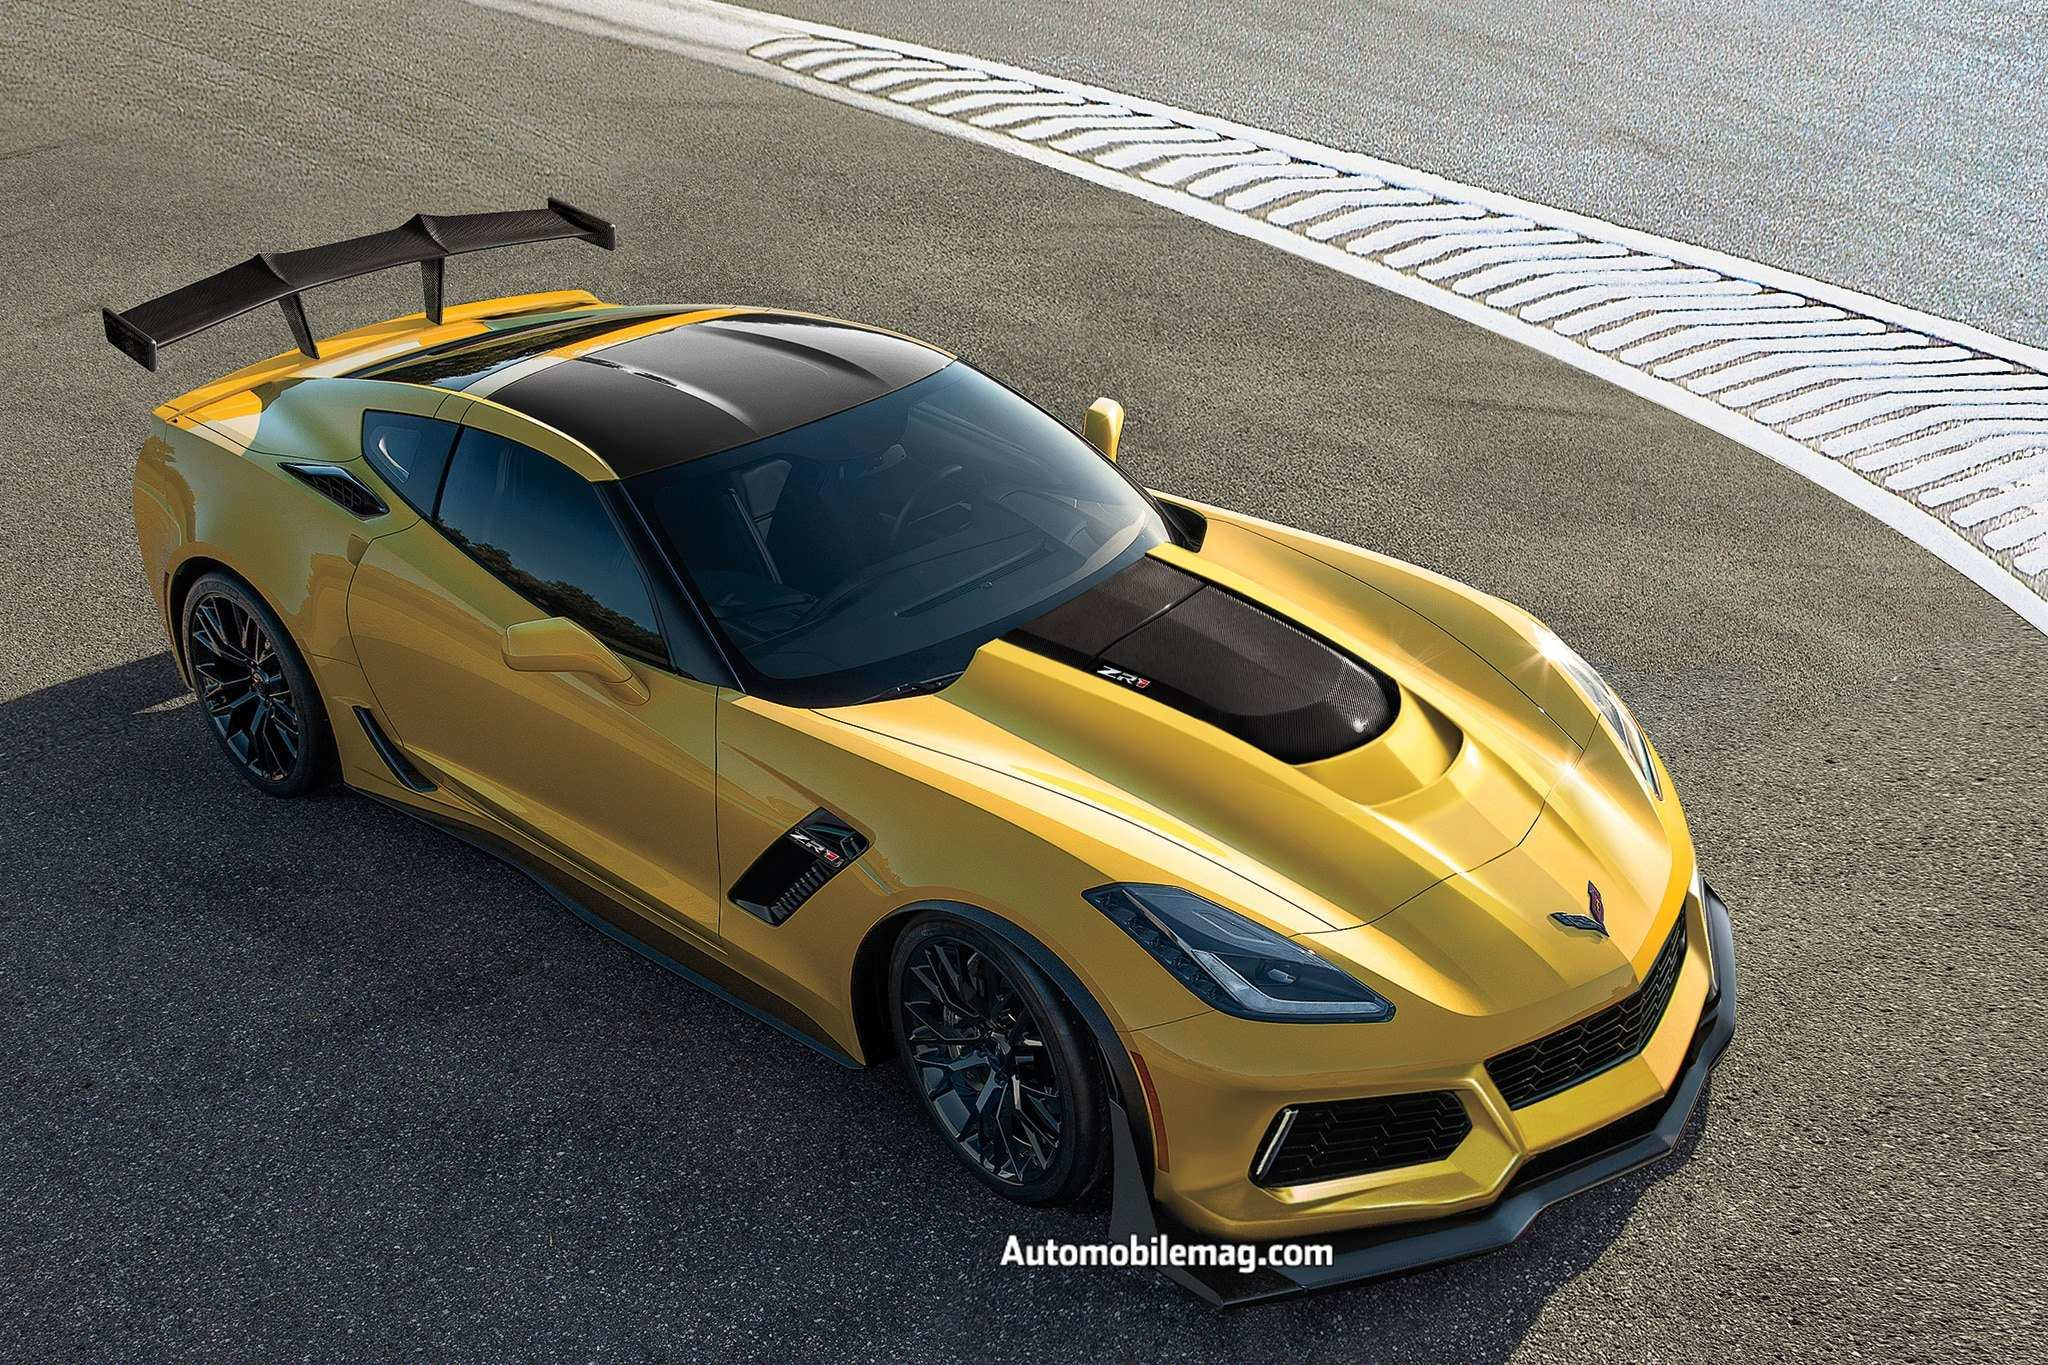 59 New 2020 Chevy Corvette Zora Zr1 Release Date And Concept